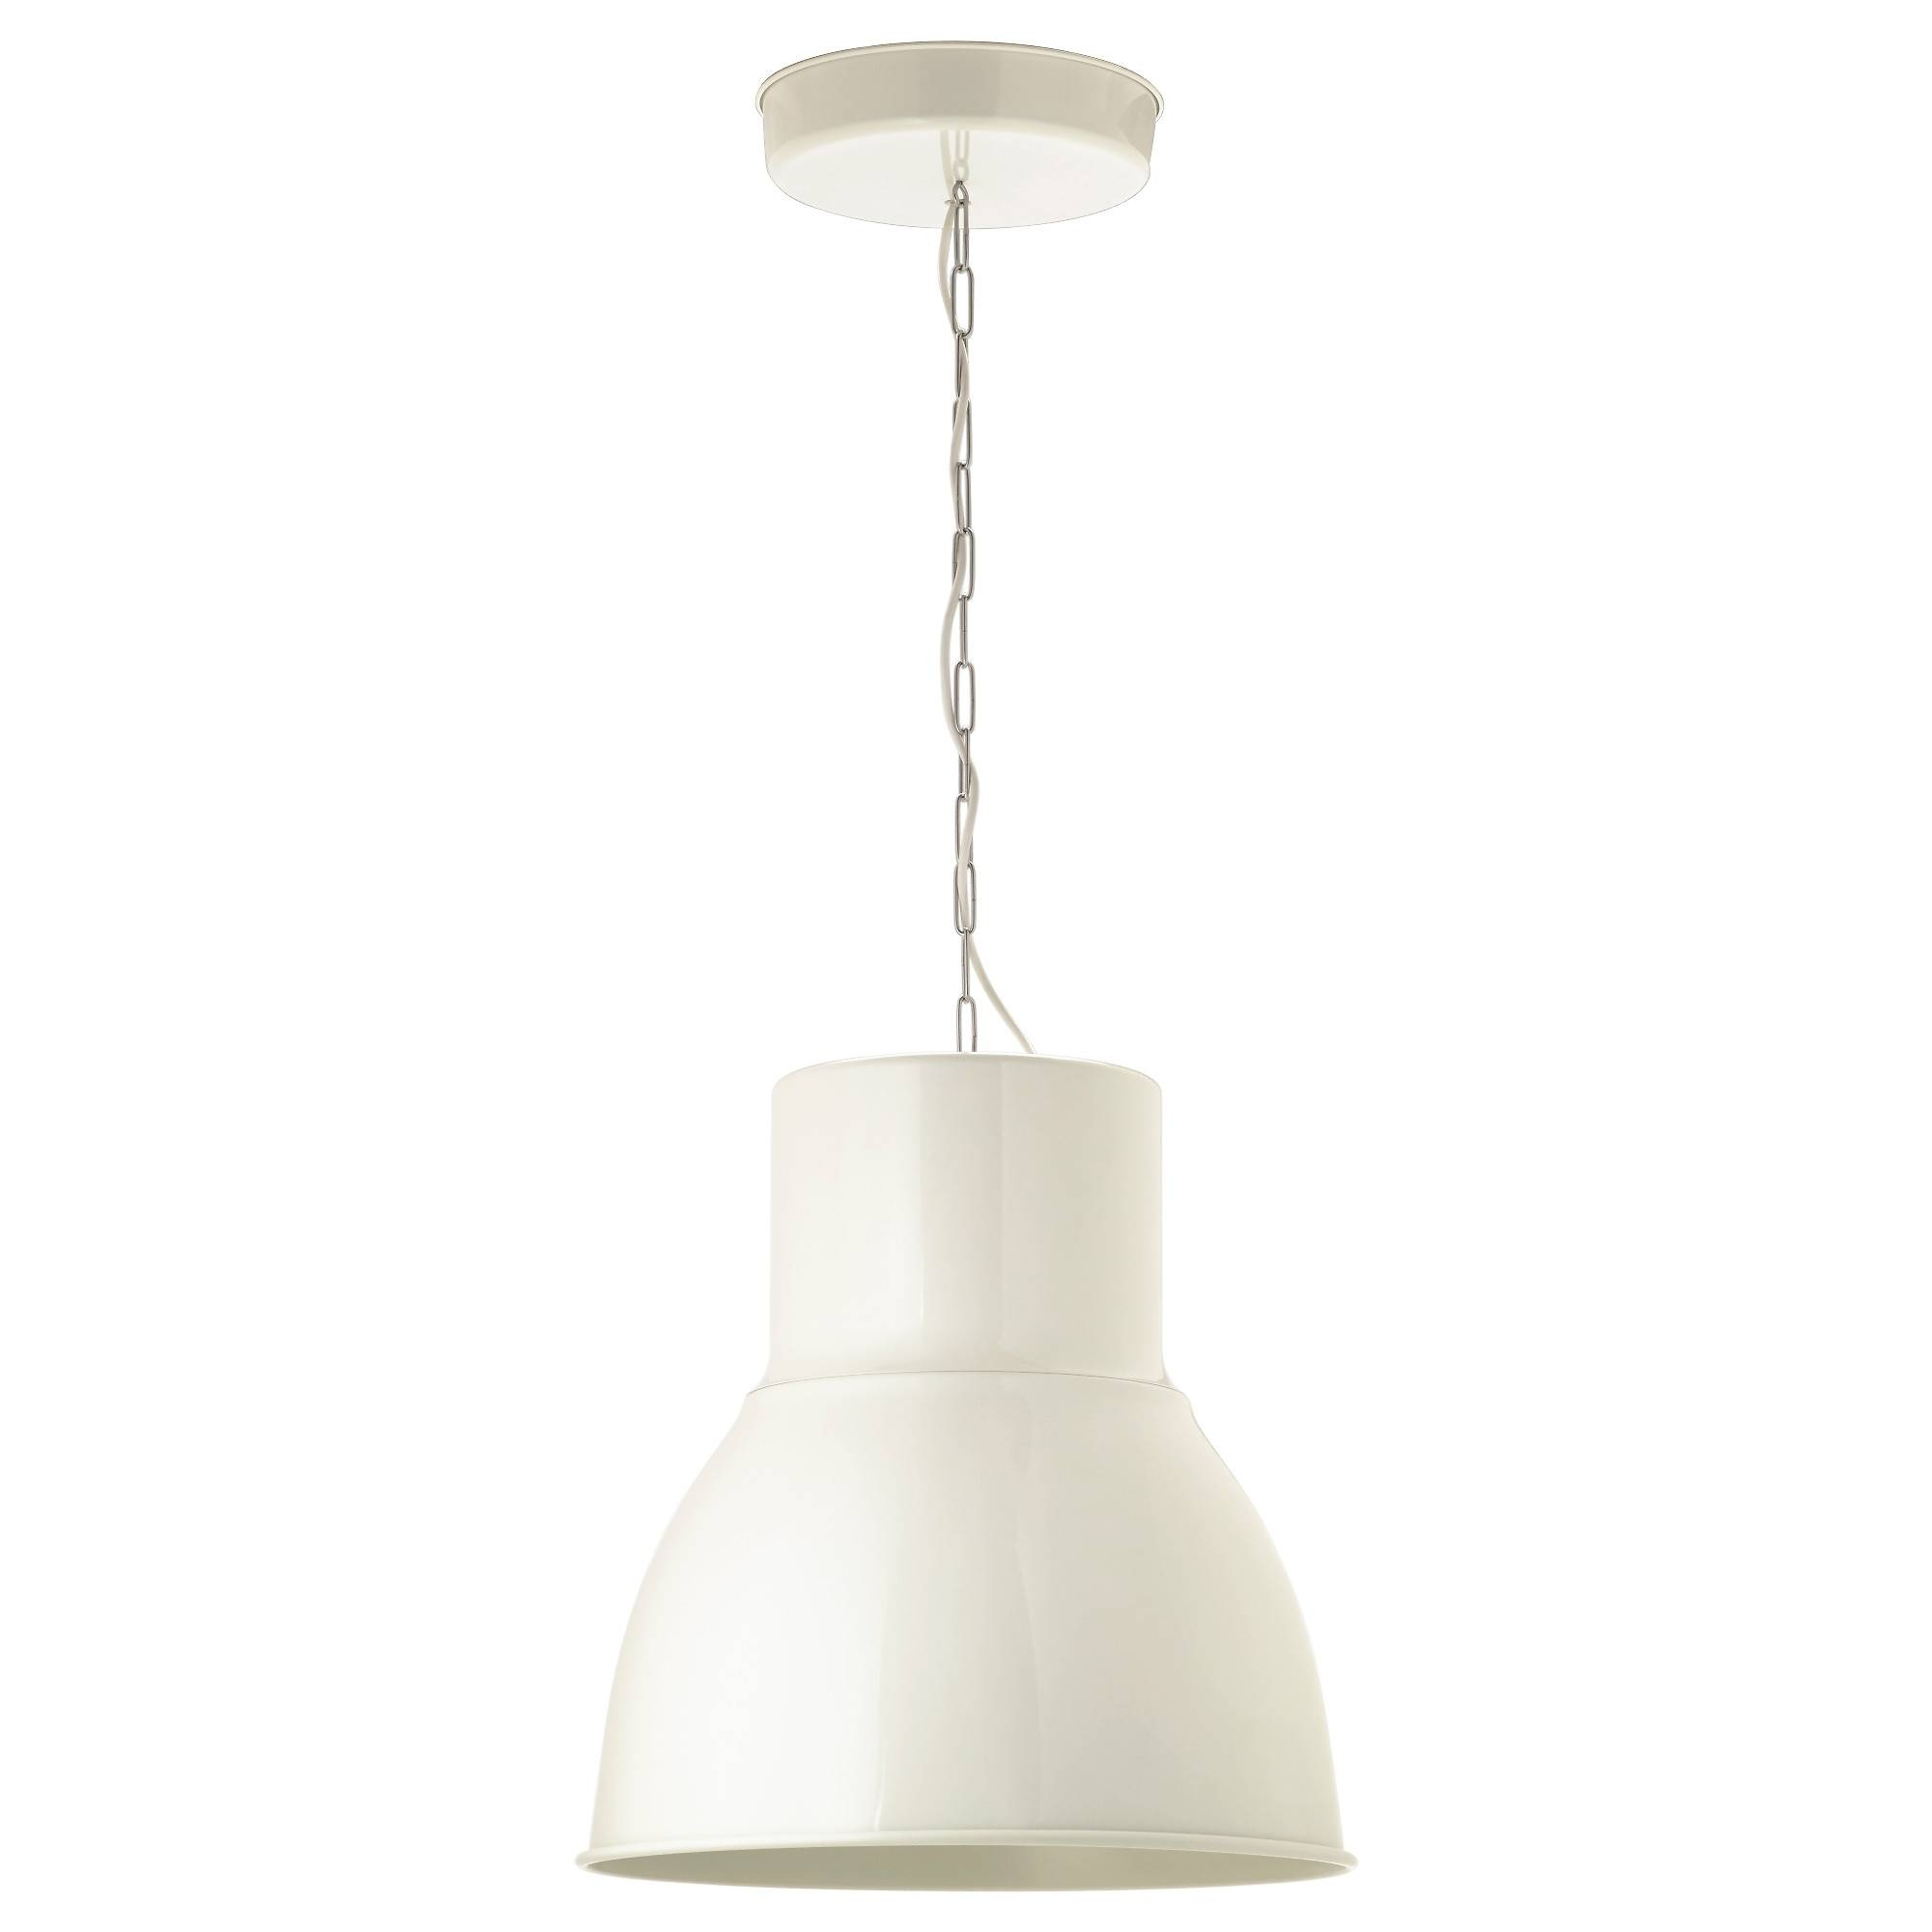 Ceiling Lights & Lamps - Ikea within Ikea Plug in Pendant Lights (Image 4 of 15)